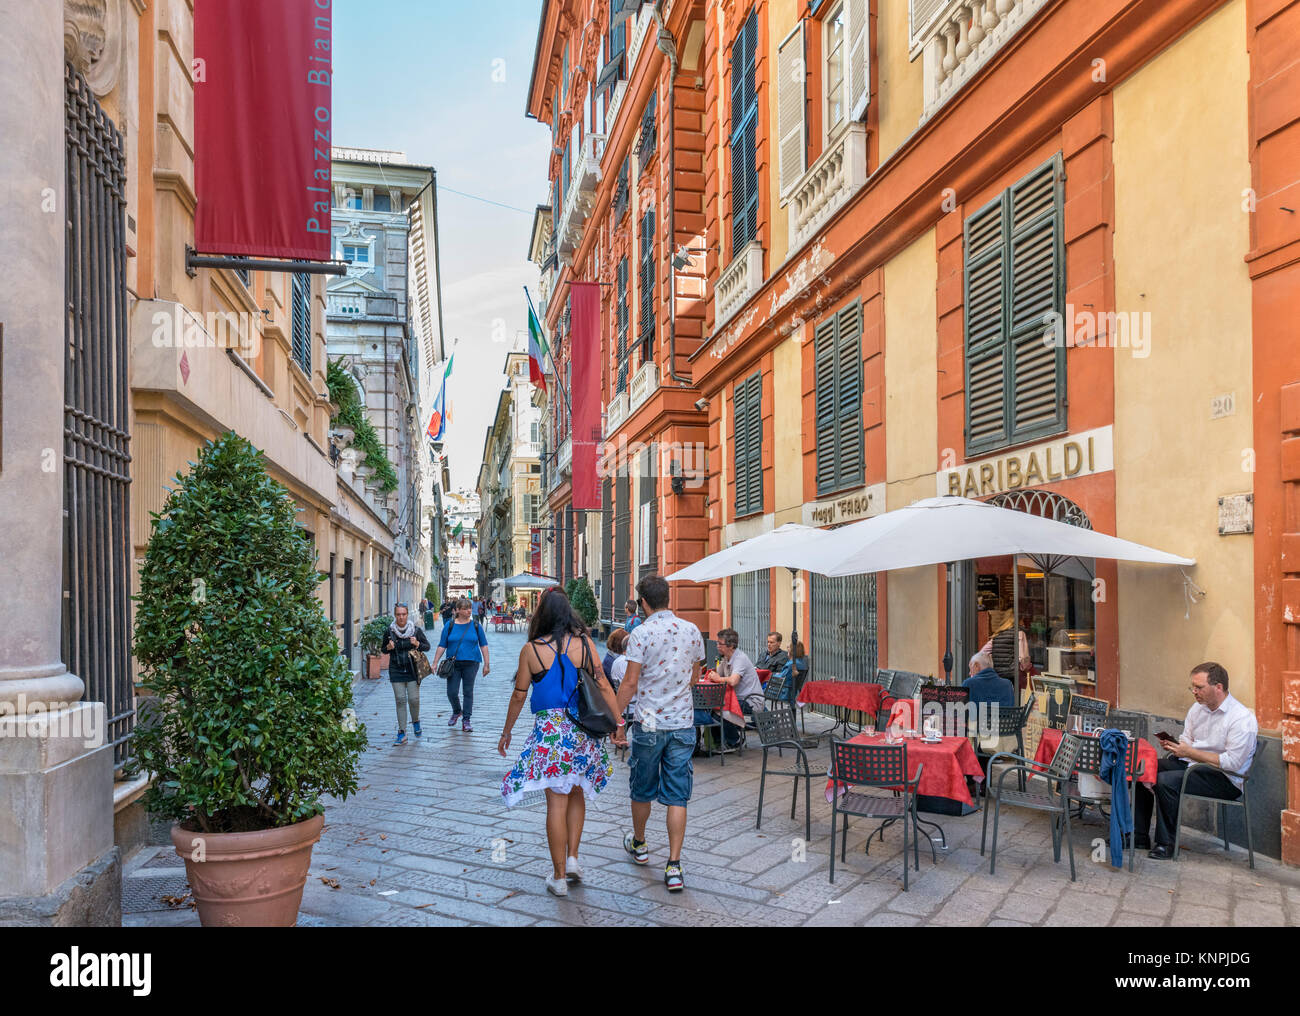 Sidewalk cafe on Via Garibaldi in the old town, with the Palazzo Bianco to the left, Genoa, Liguria, Italy - Stock Image